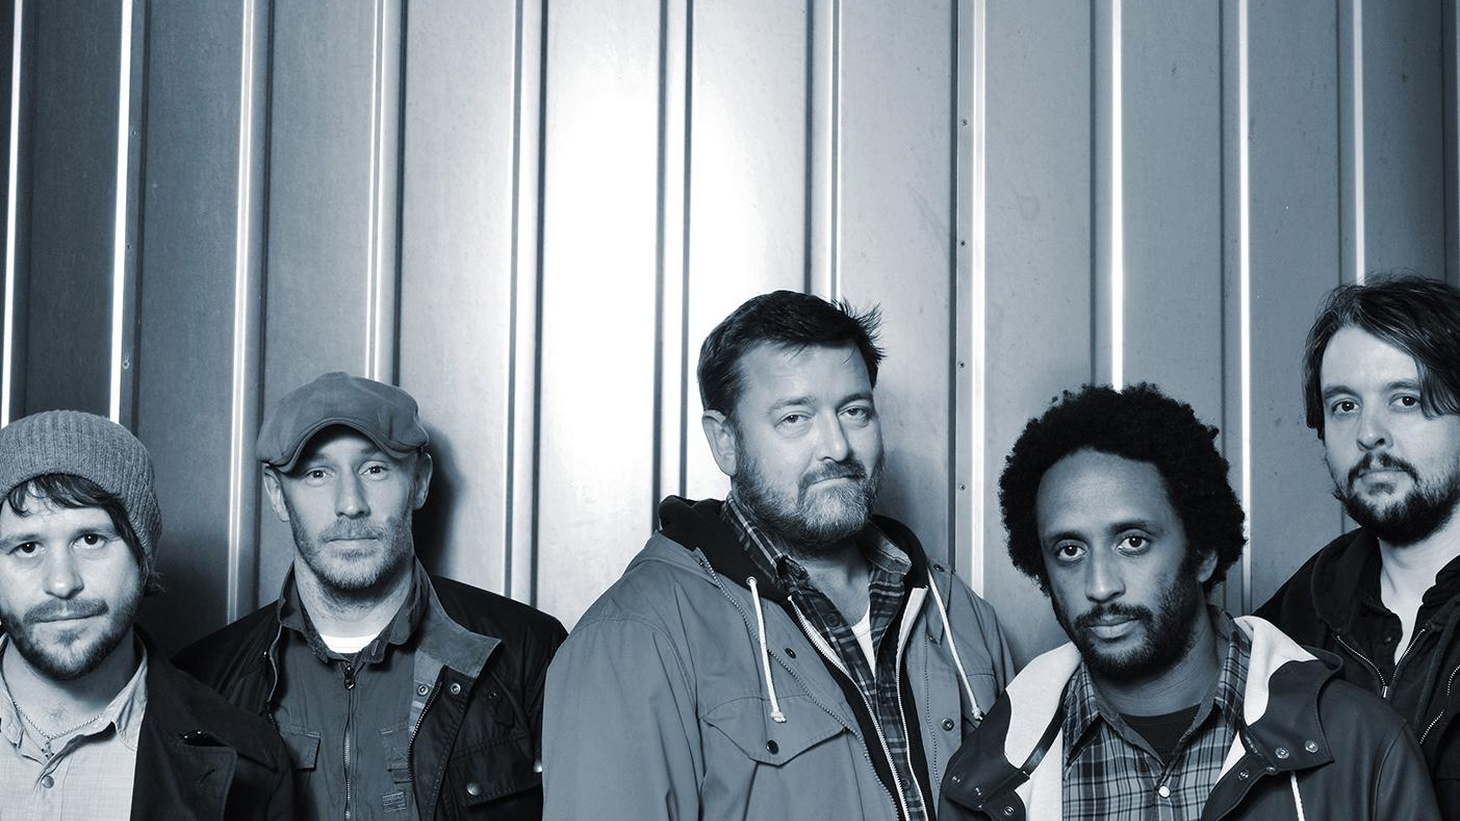 Manchester's beloved Elbow has released another stunning album. This sixth studio release is already a contender for one of the top albums of the year.